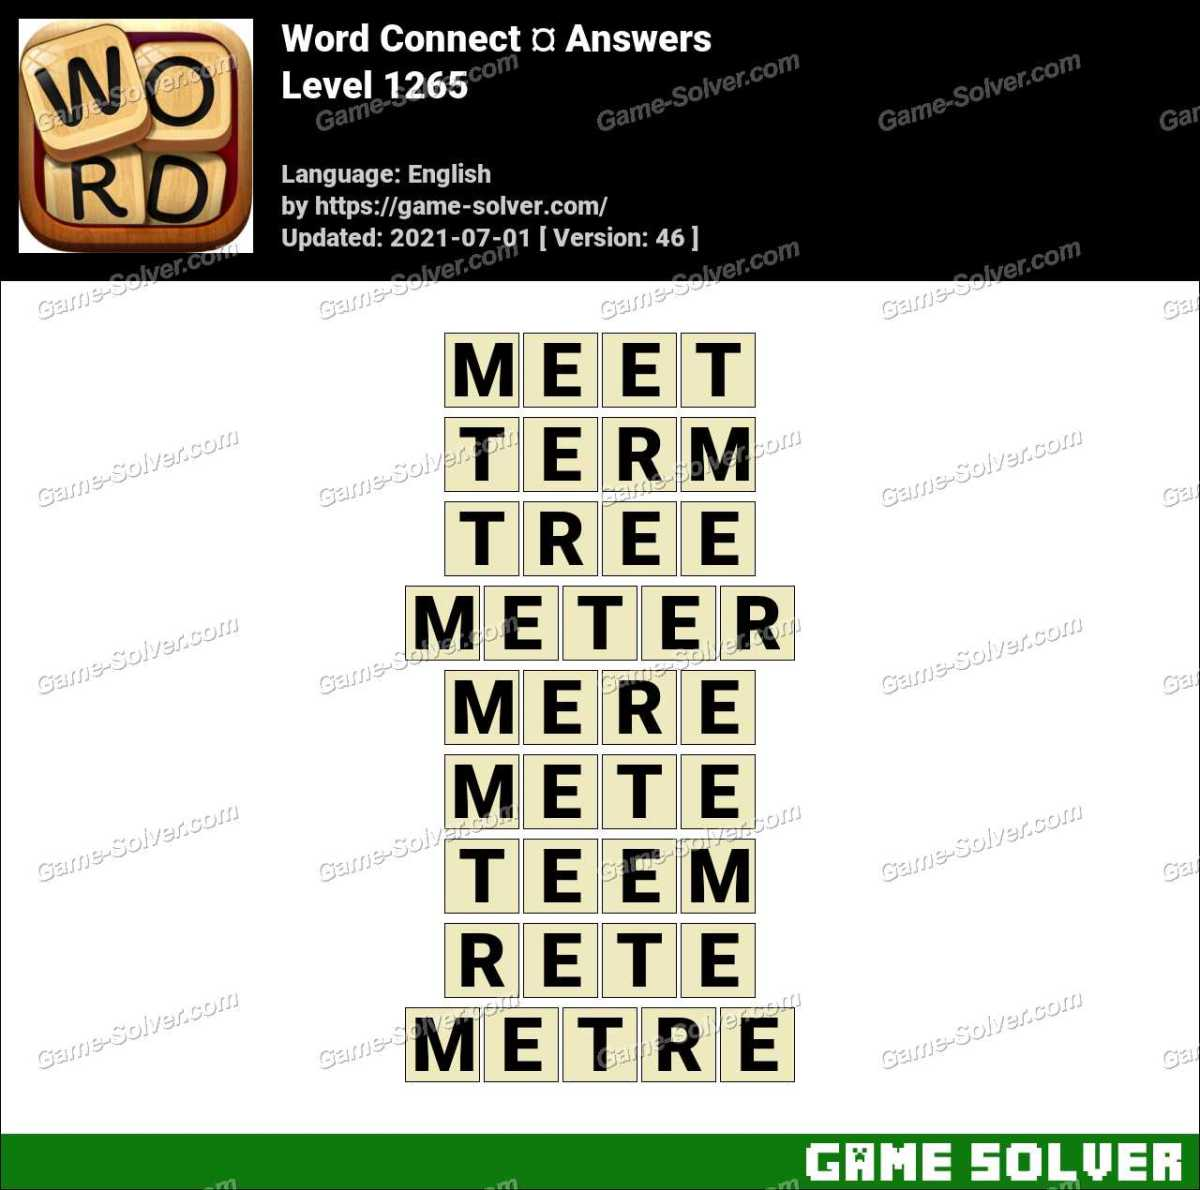 Word Connect Level 1265 Answers